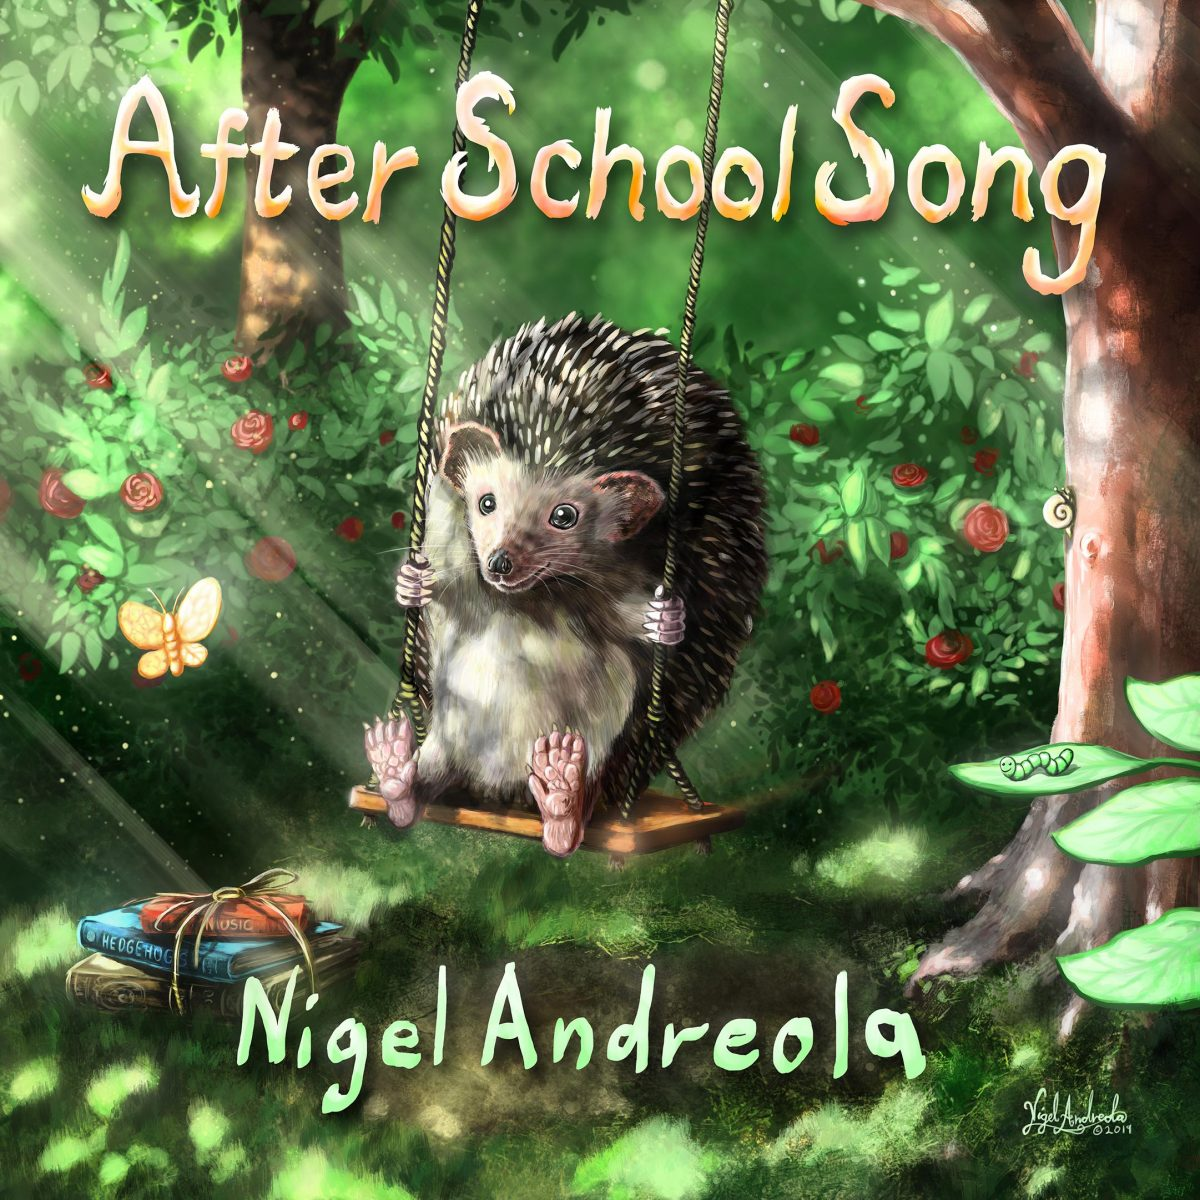 After School Song by Nigel Andreola